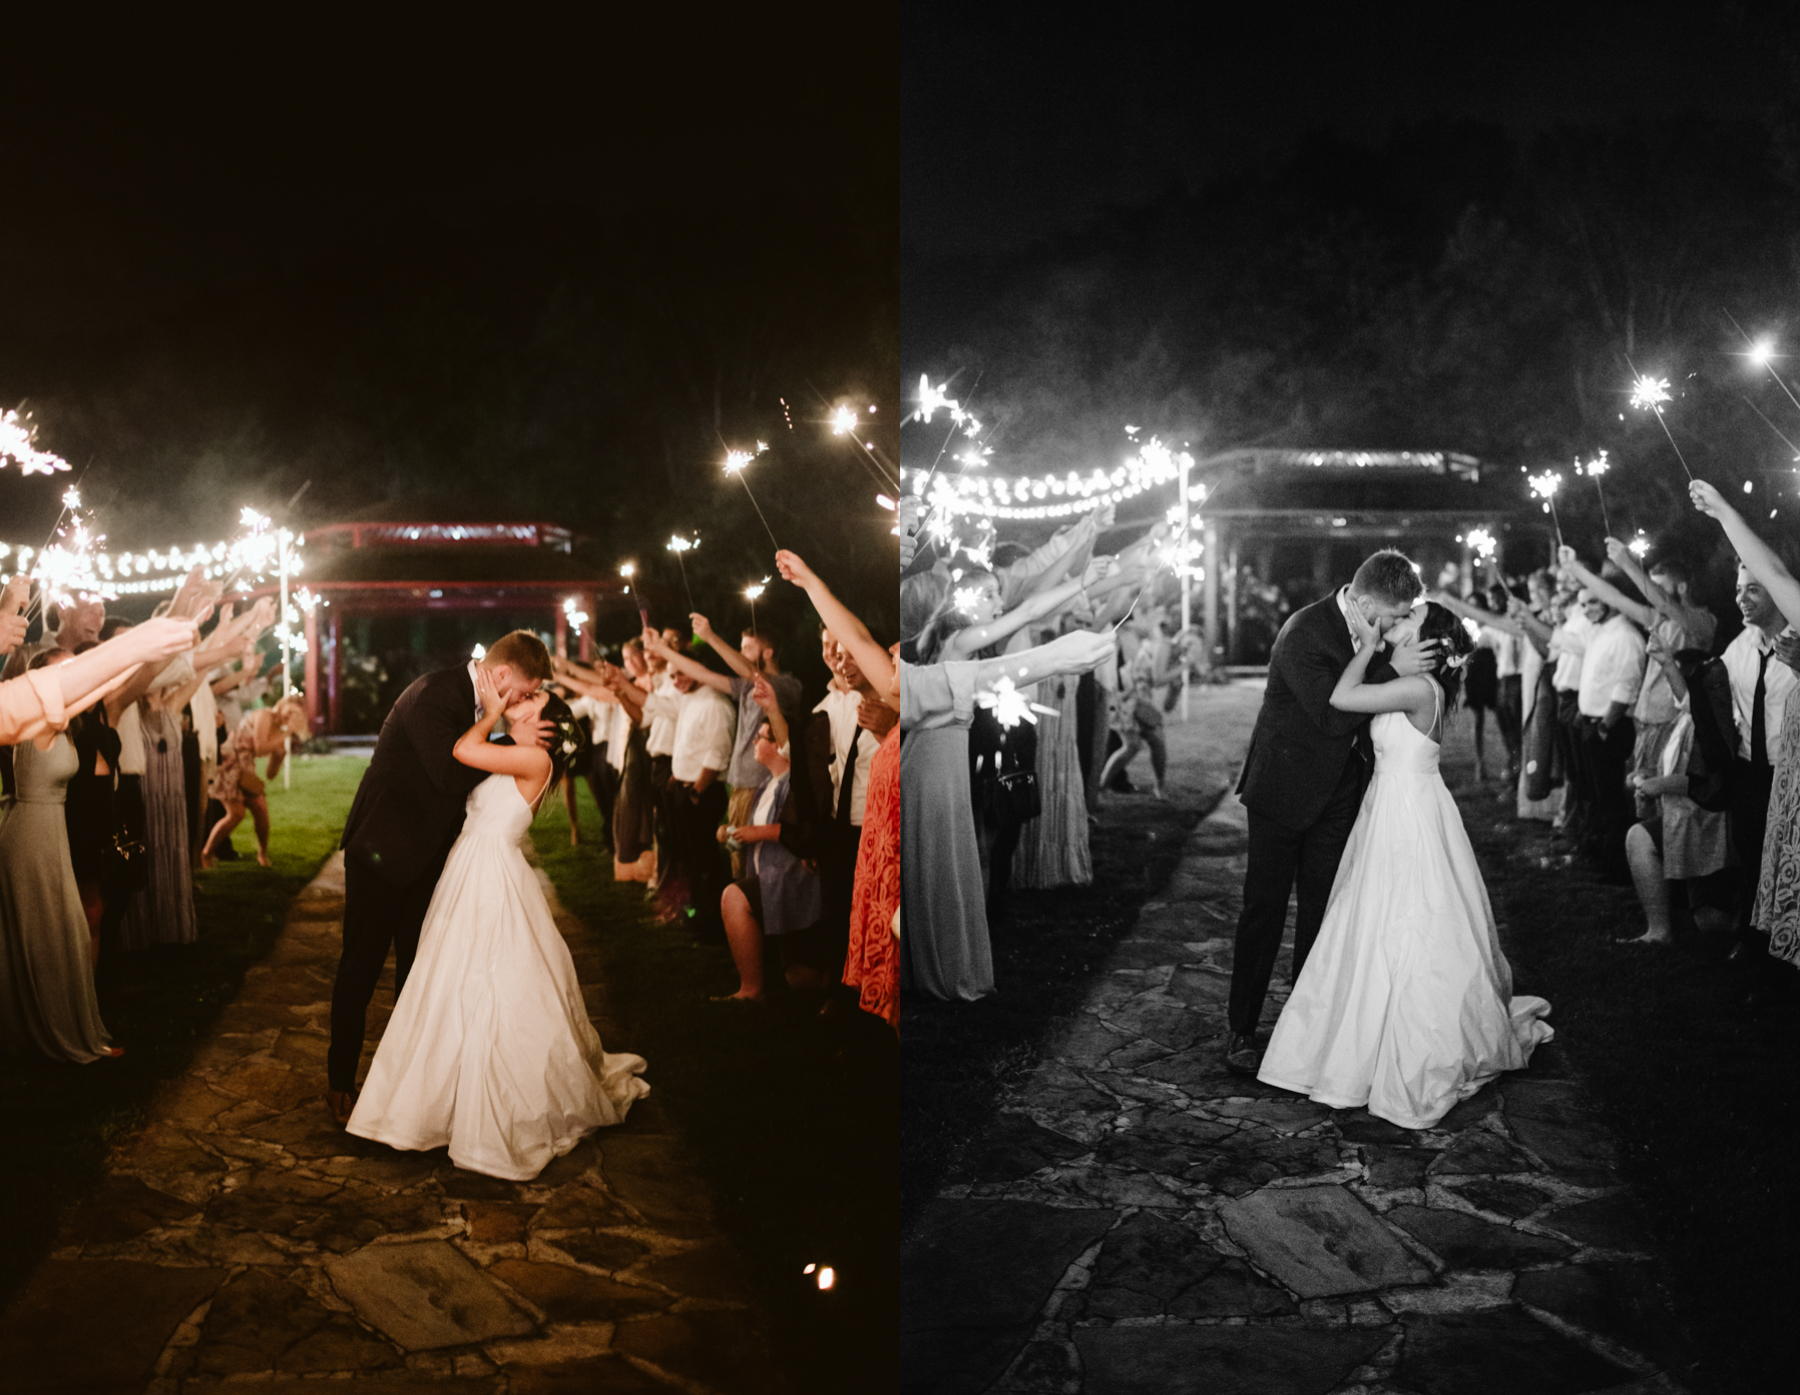 Sparkler exit from a reception of a Sunny summer wedding at Dara's Garden in Knoxville, Tennessee